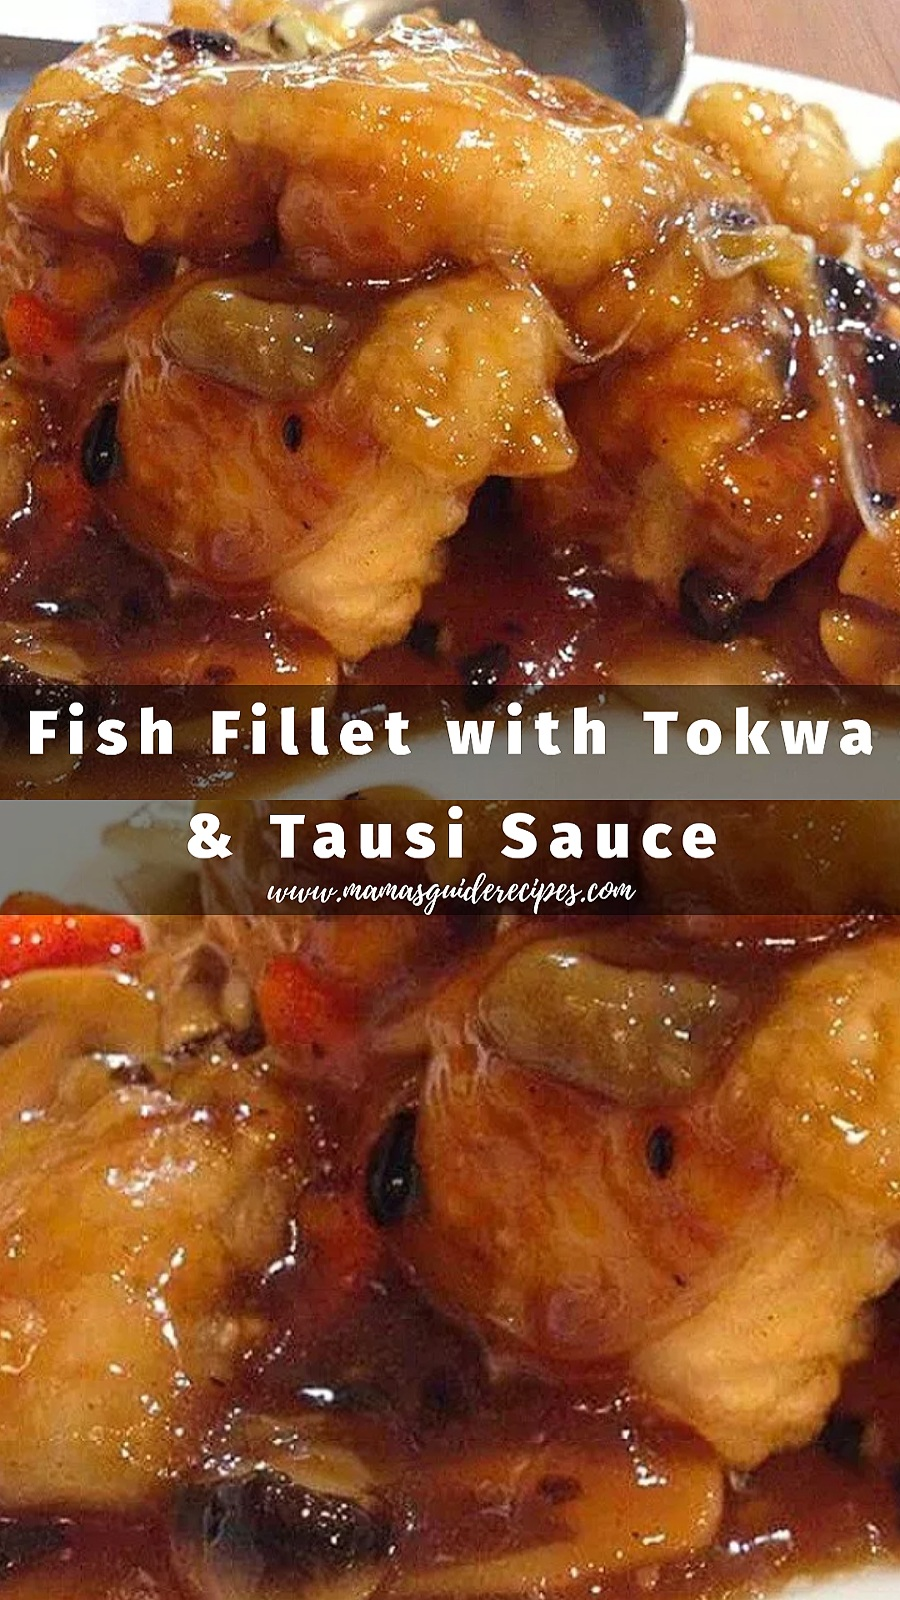 Fish Fillet with Tokwa and Tausi Sauce